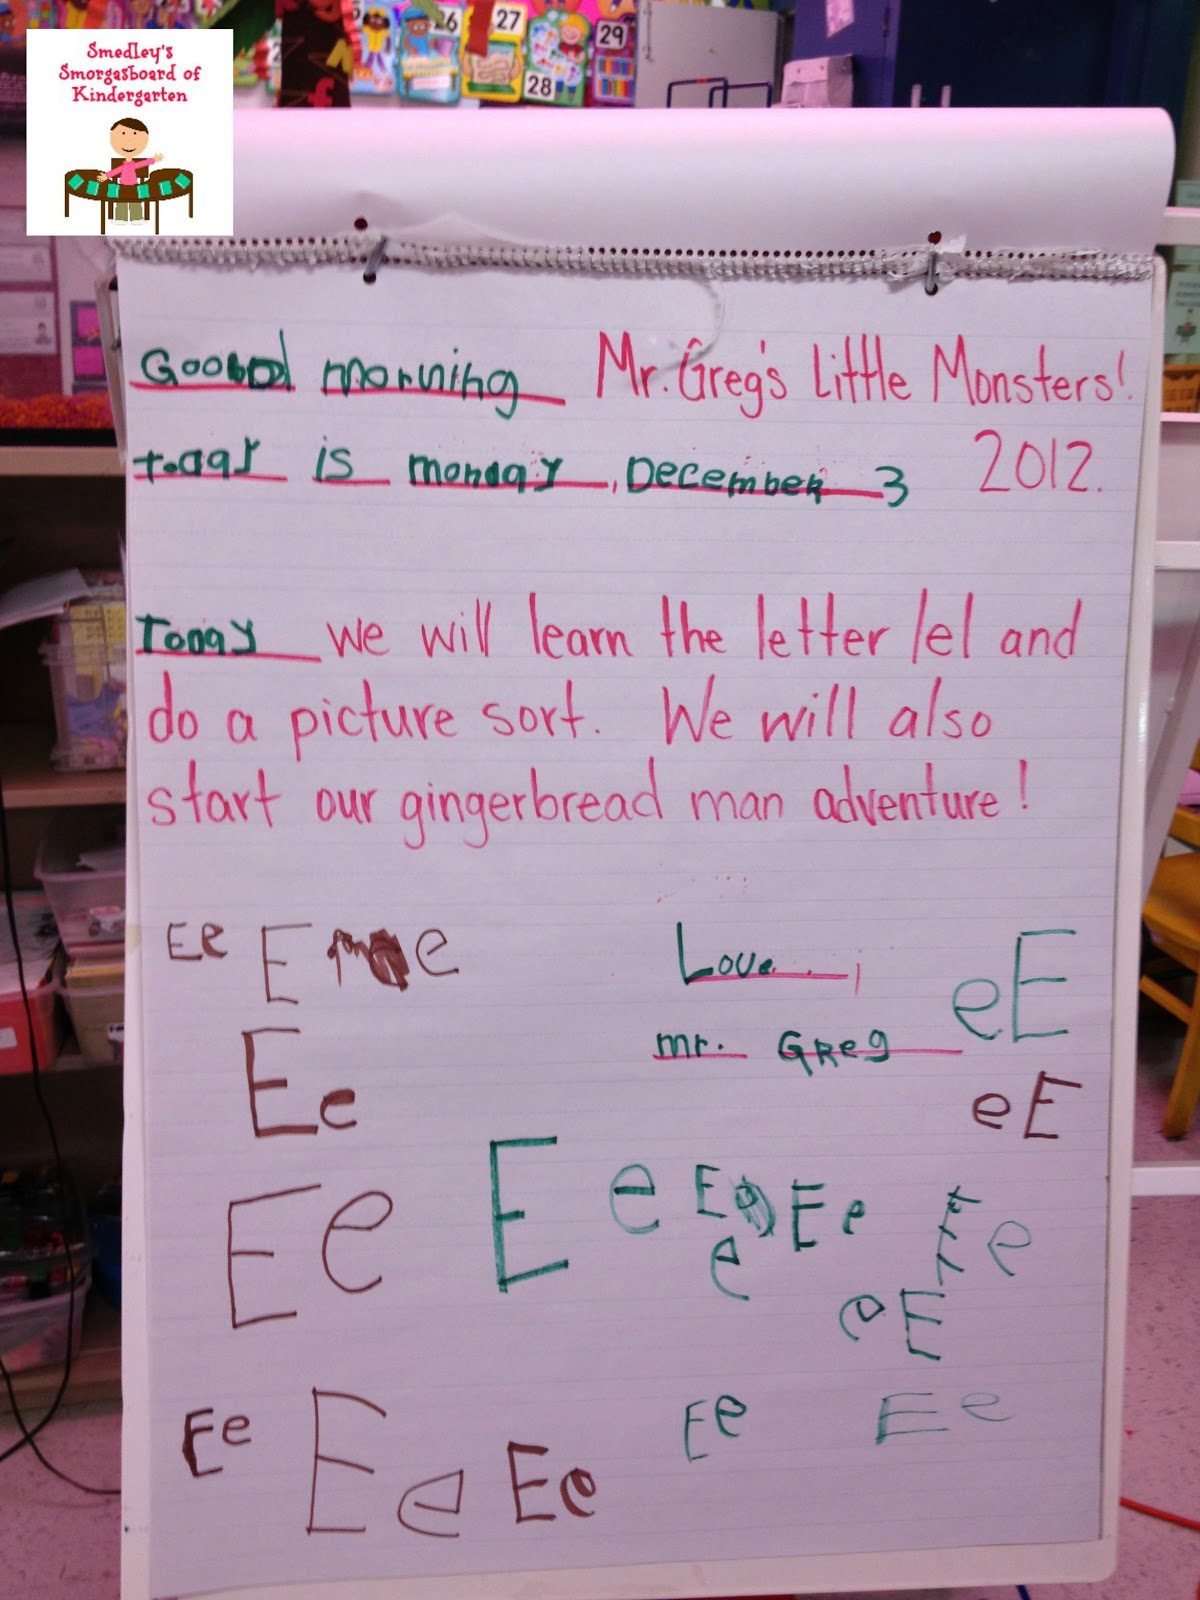 The Kindergarten Smorgasboard: Morning Meeting Monday!